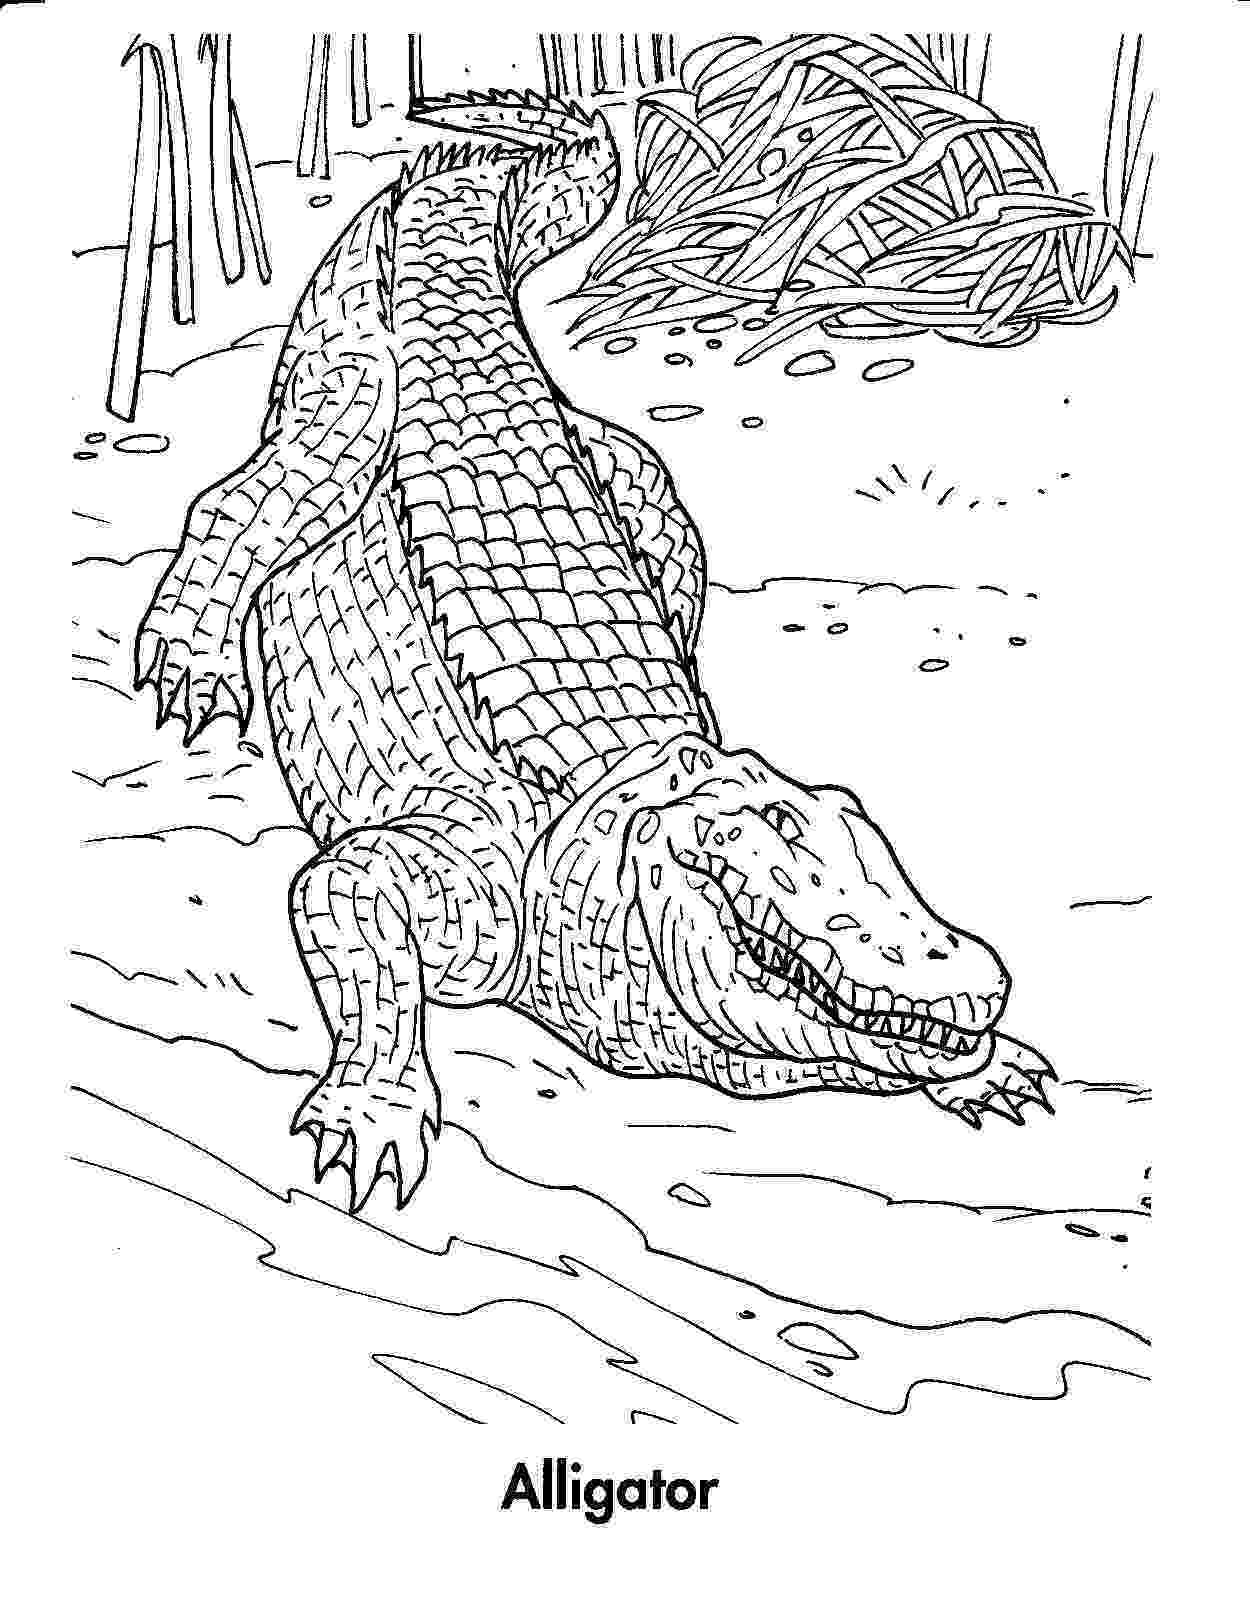 aligator coloring pages free printable crocodile coloring pages for kids aligator coloring pages